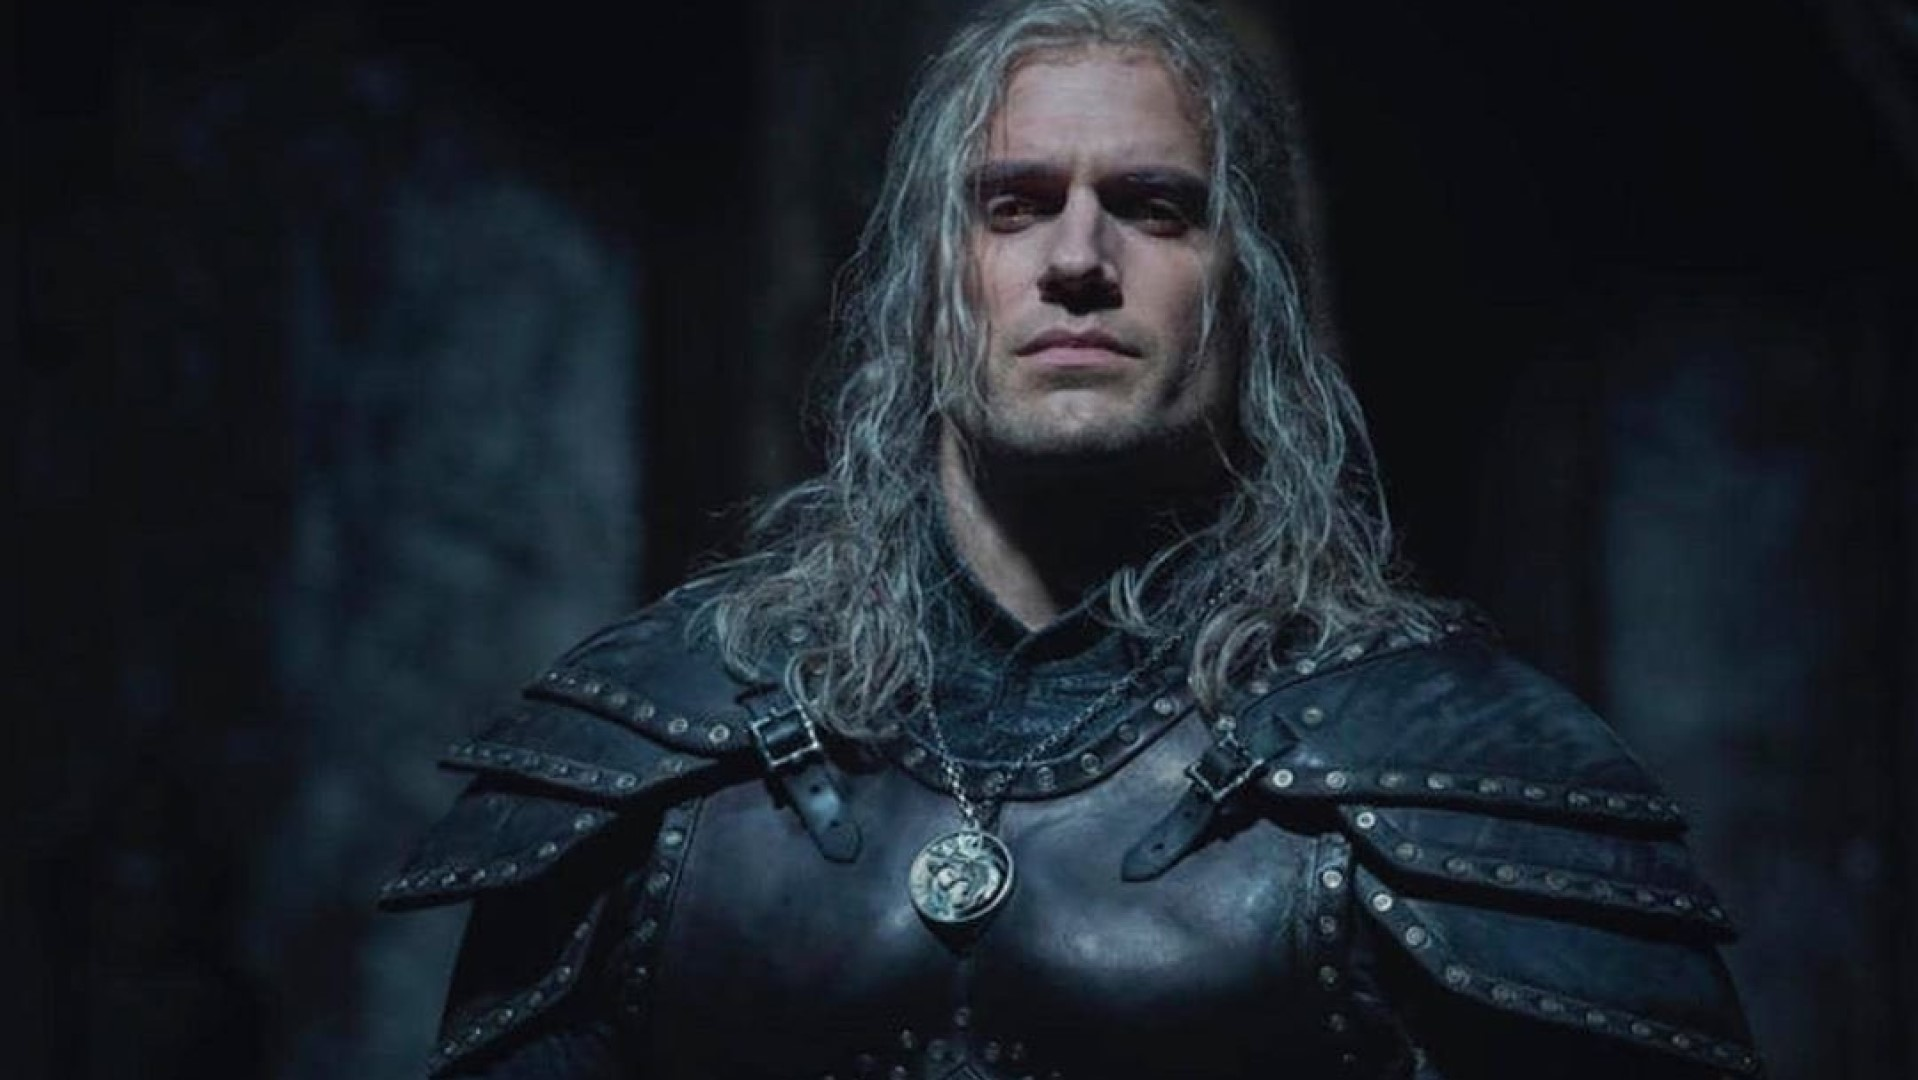 New Witcher season two castings reveal a new character and a gender swap